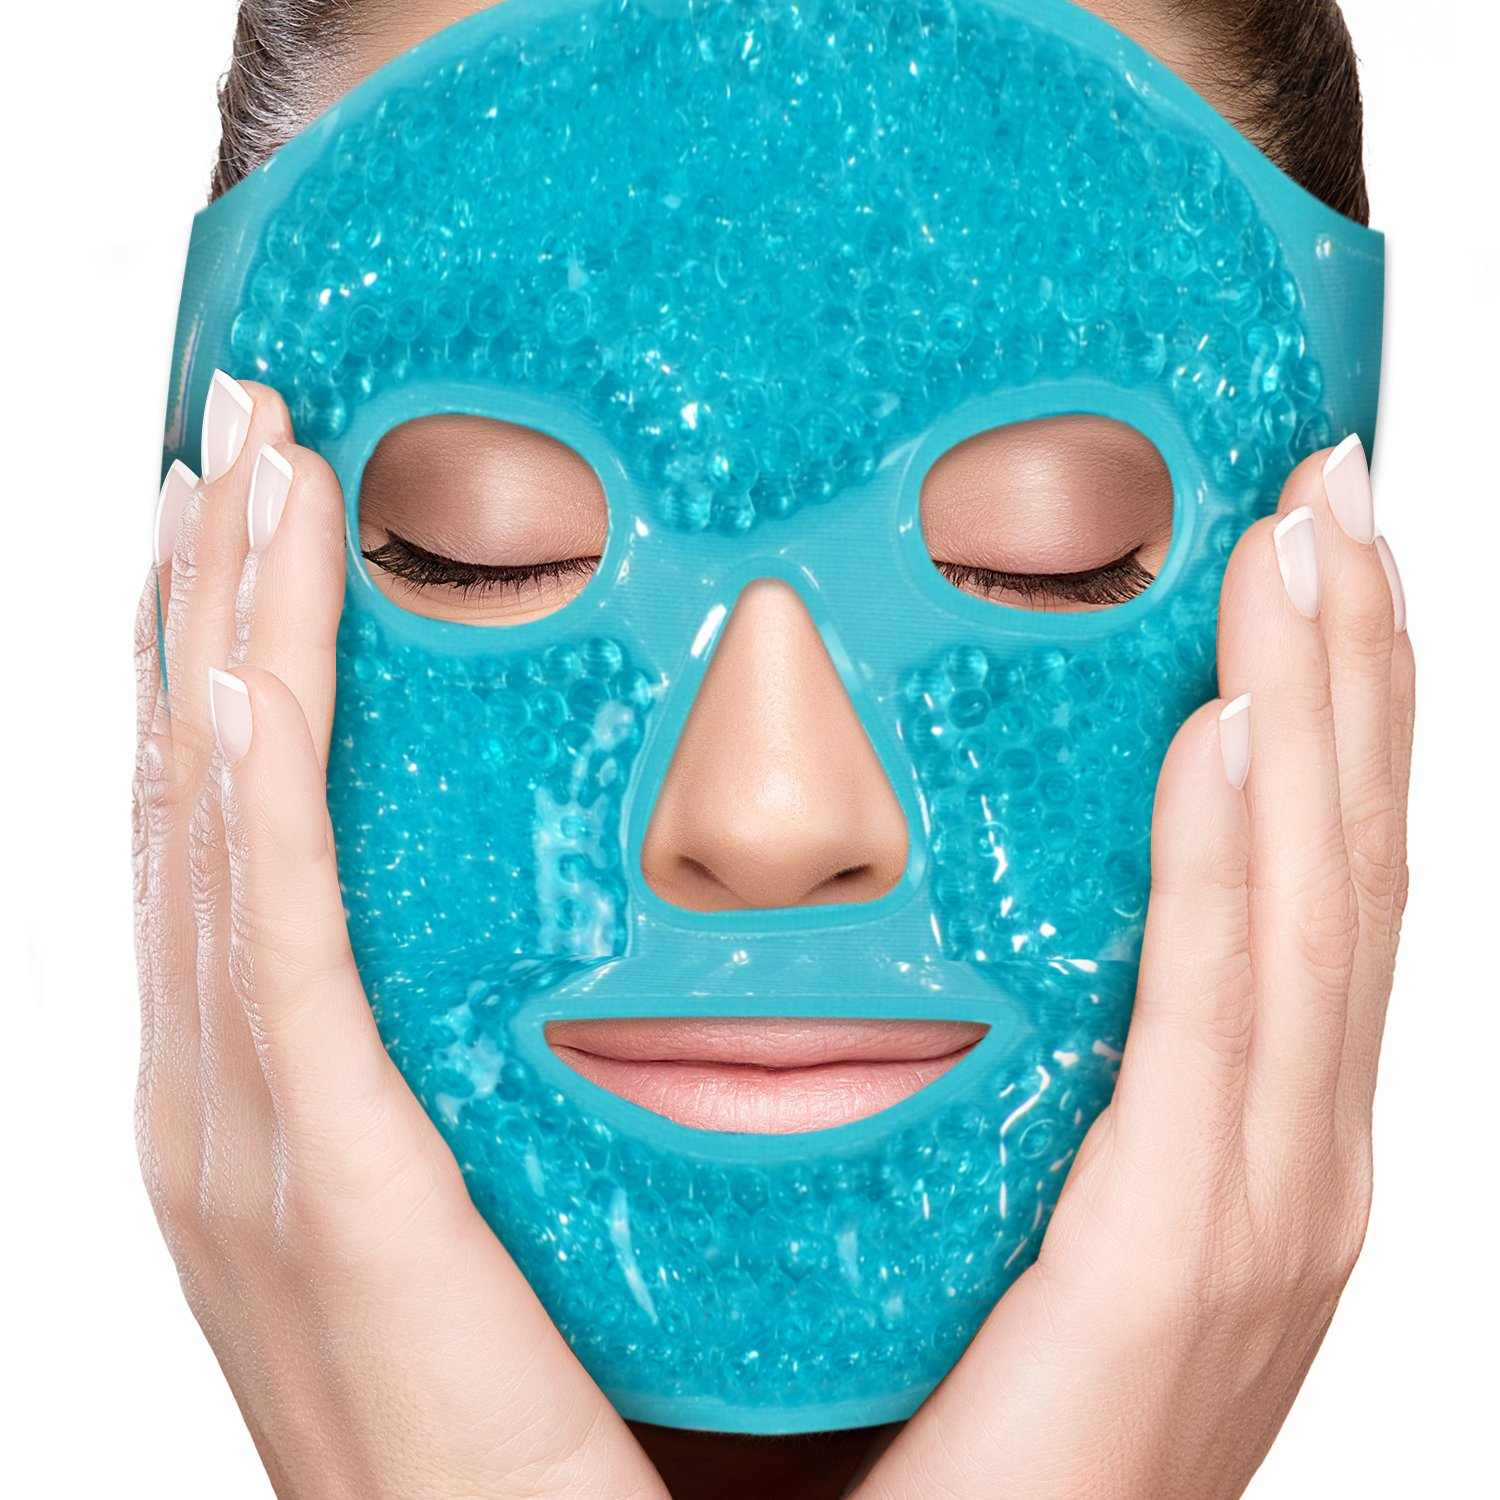 PerfeCore Facial Mask - Get Rid of Puffy Eyes - Migraine Relief, Sleeping, Travel Therapeutic Hot Cold Compress Pack - Gel Beads, Spa Therapy Wrap for Sinus Pressure Face Puffiness Headaches - Blue by Perfecore